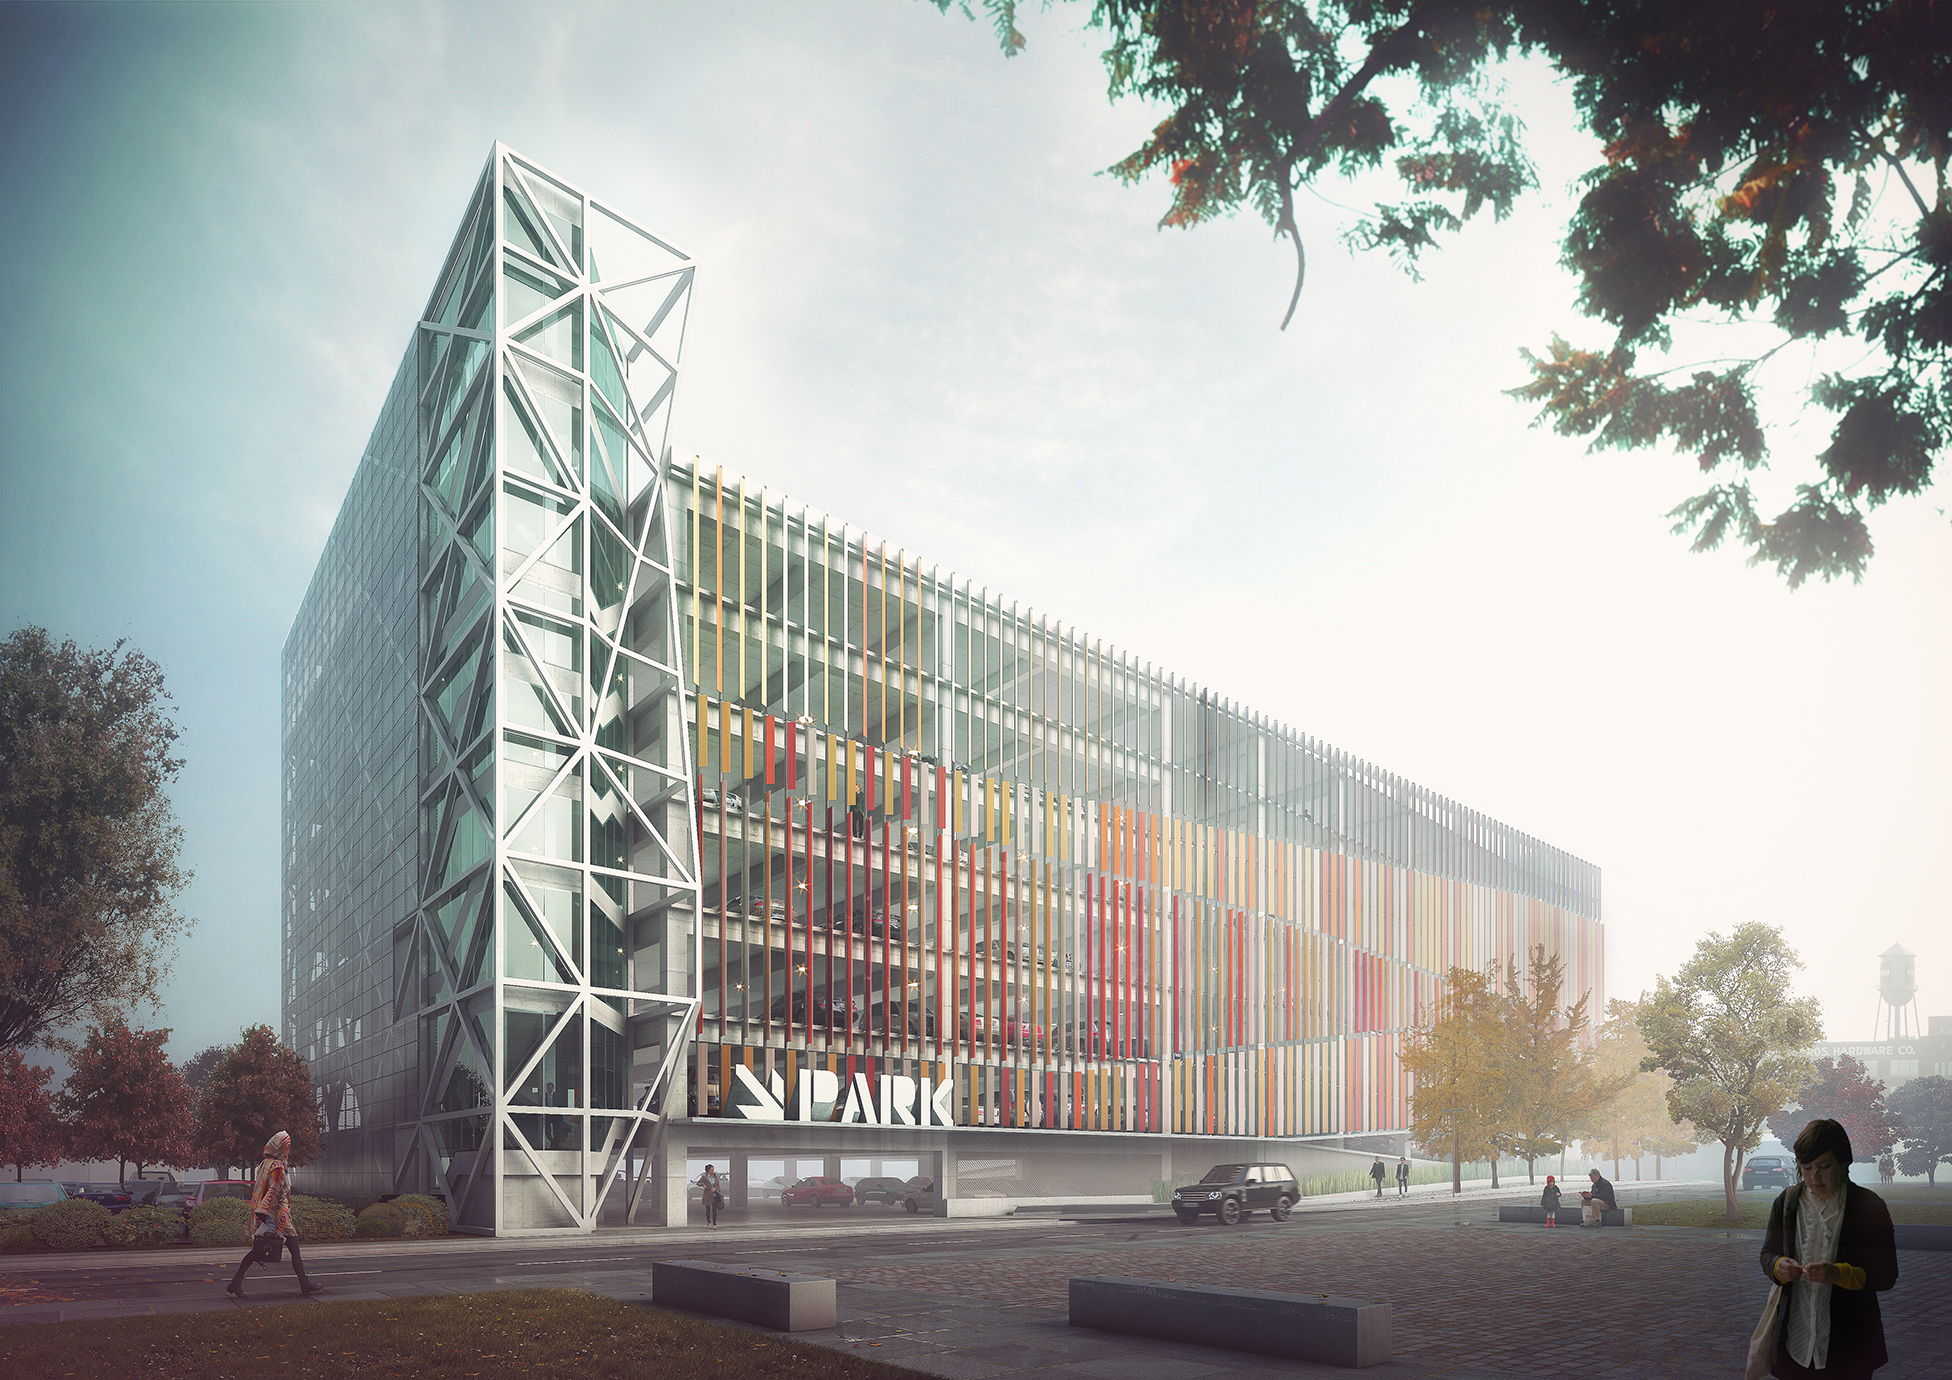 Franklin County Convention Authority Garage / NBBJ